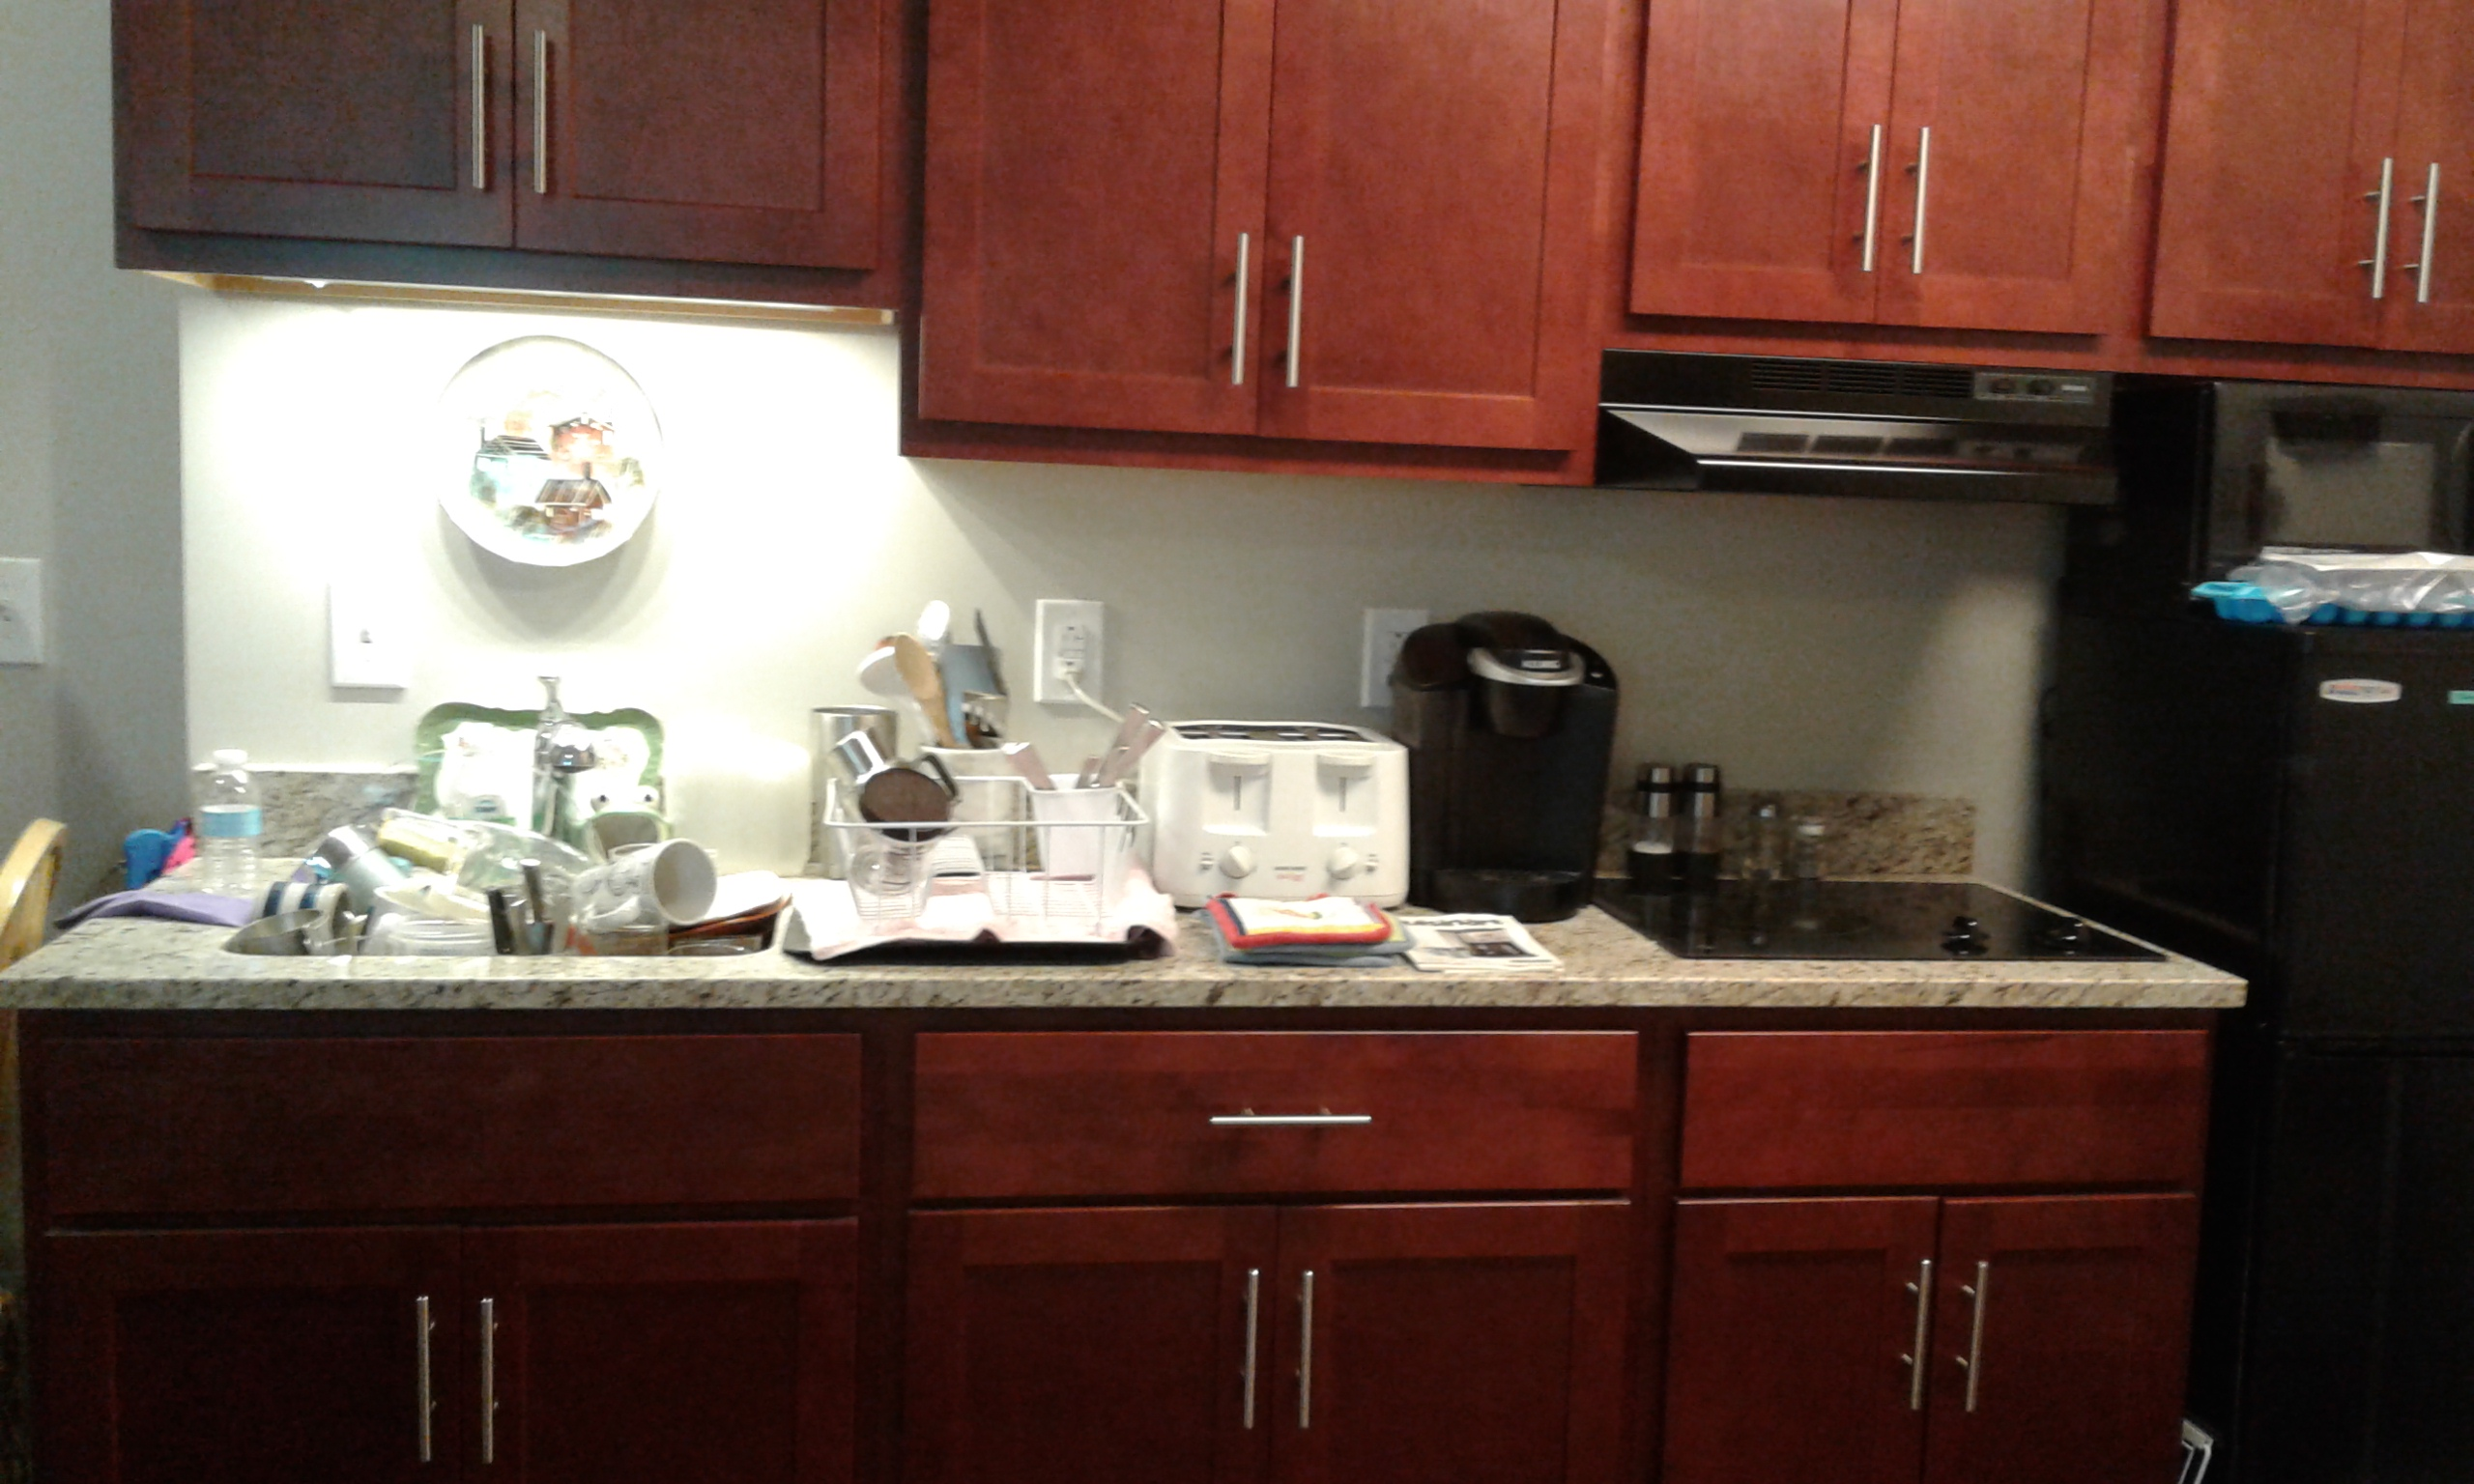 kitchenette counter after